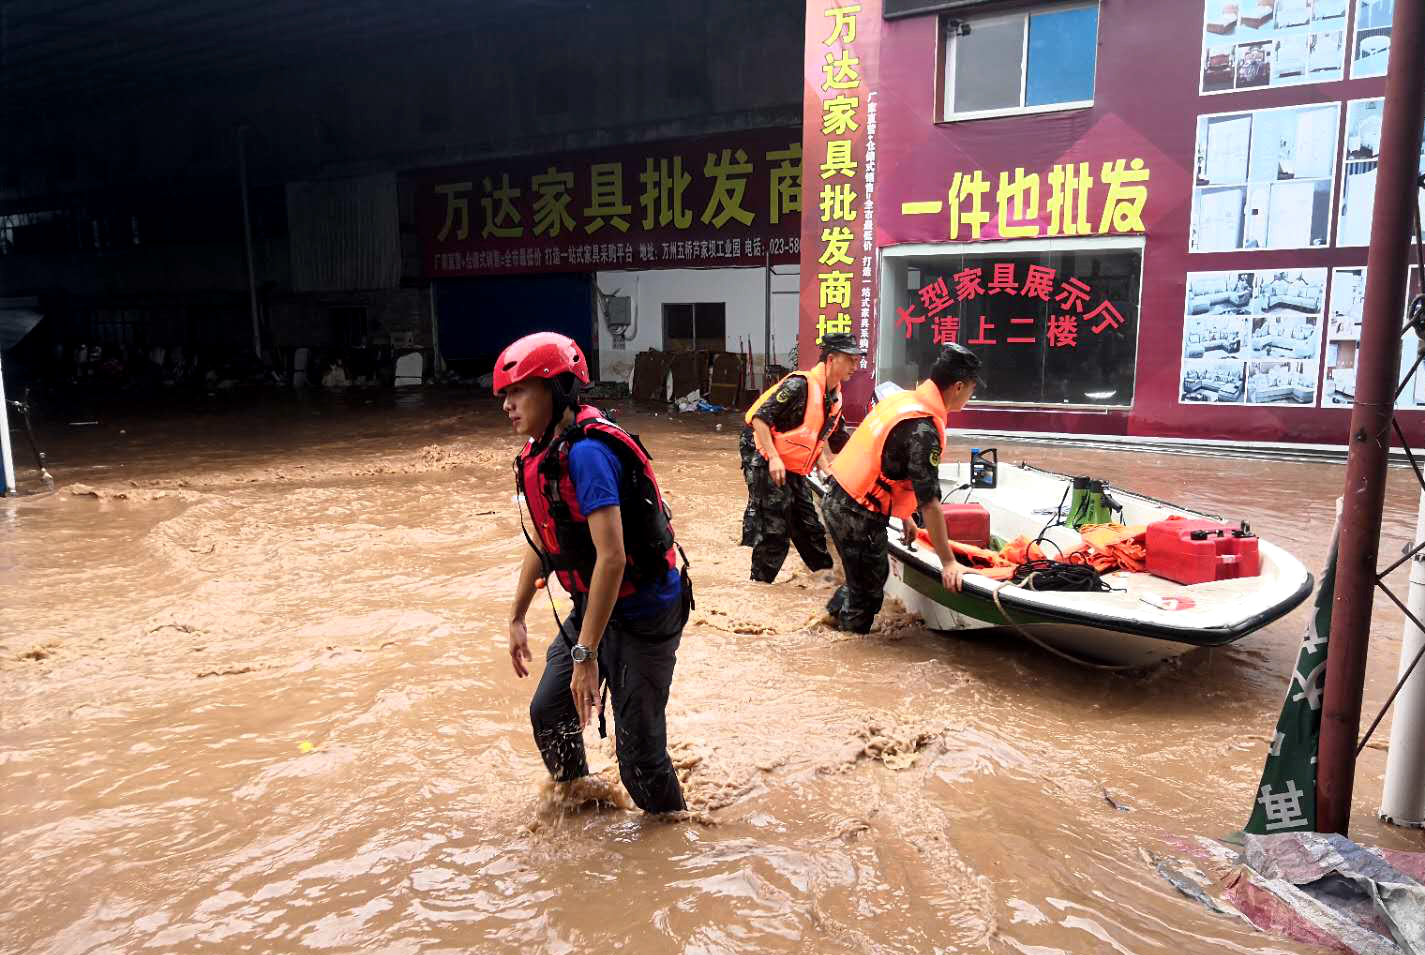 Paramilitary policemen evacuate people in a flooded region in Wanzhou in southwest China's Chongqing Municipality Thursday, July 16, 2020. Credit: Feature China/Barcroft Media via Getty Images